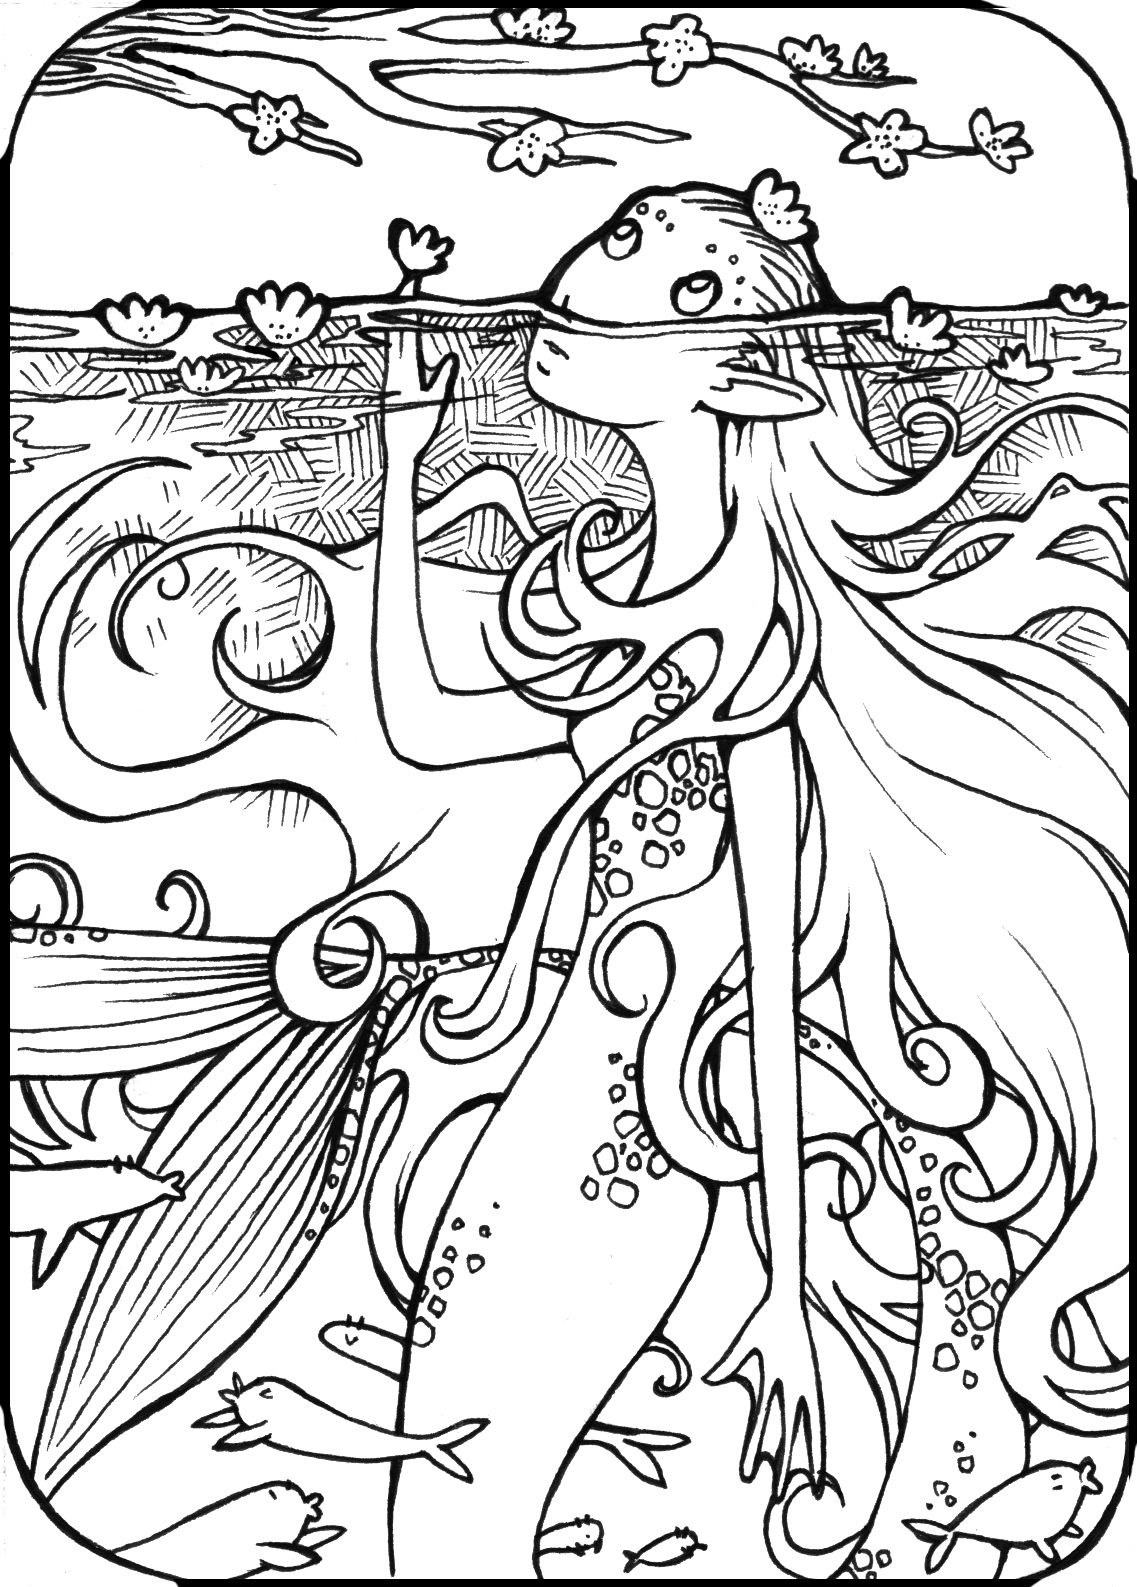 Free coloring pictures of mermaids - 17 Best Images About Fancy Coloring Pages On Pinterest Coloring Coloring Book Pages And Disney Characters